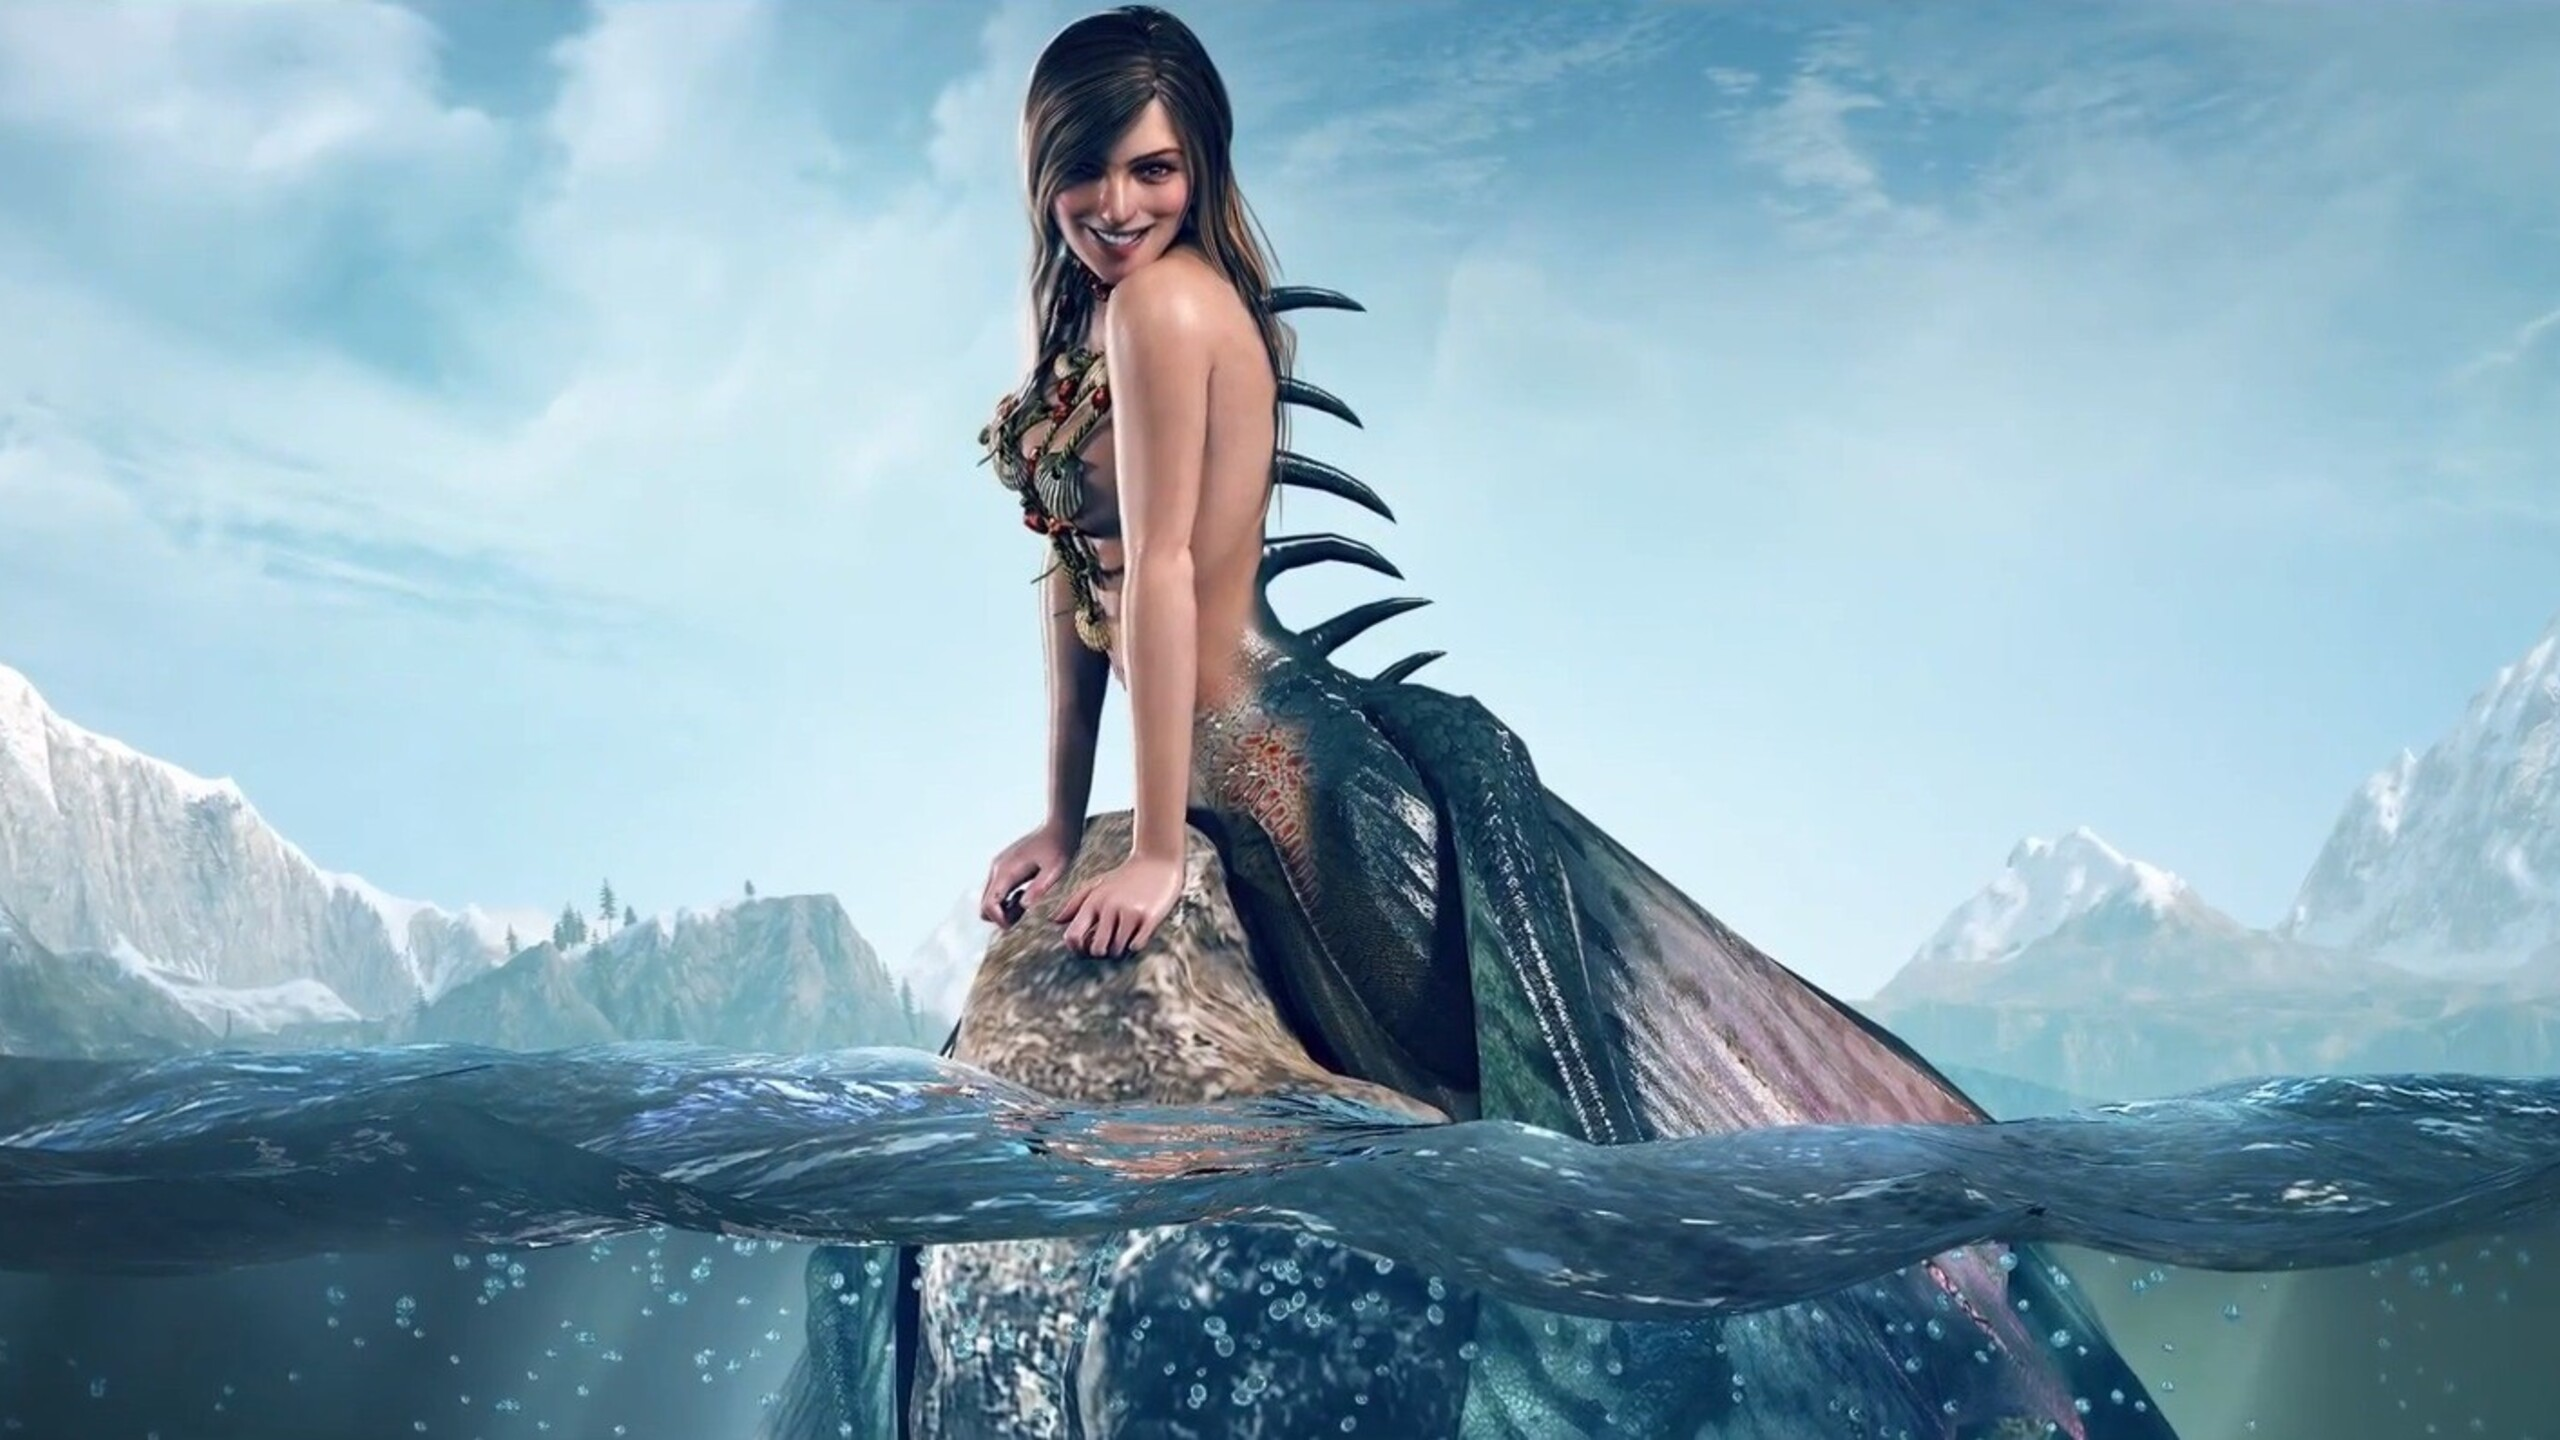 Girl Superheroes Wallpaper 1440p 2560x1440 The Witcher 3 Wild Hunt Girl 1440p Resolution Hd